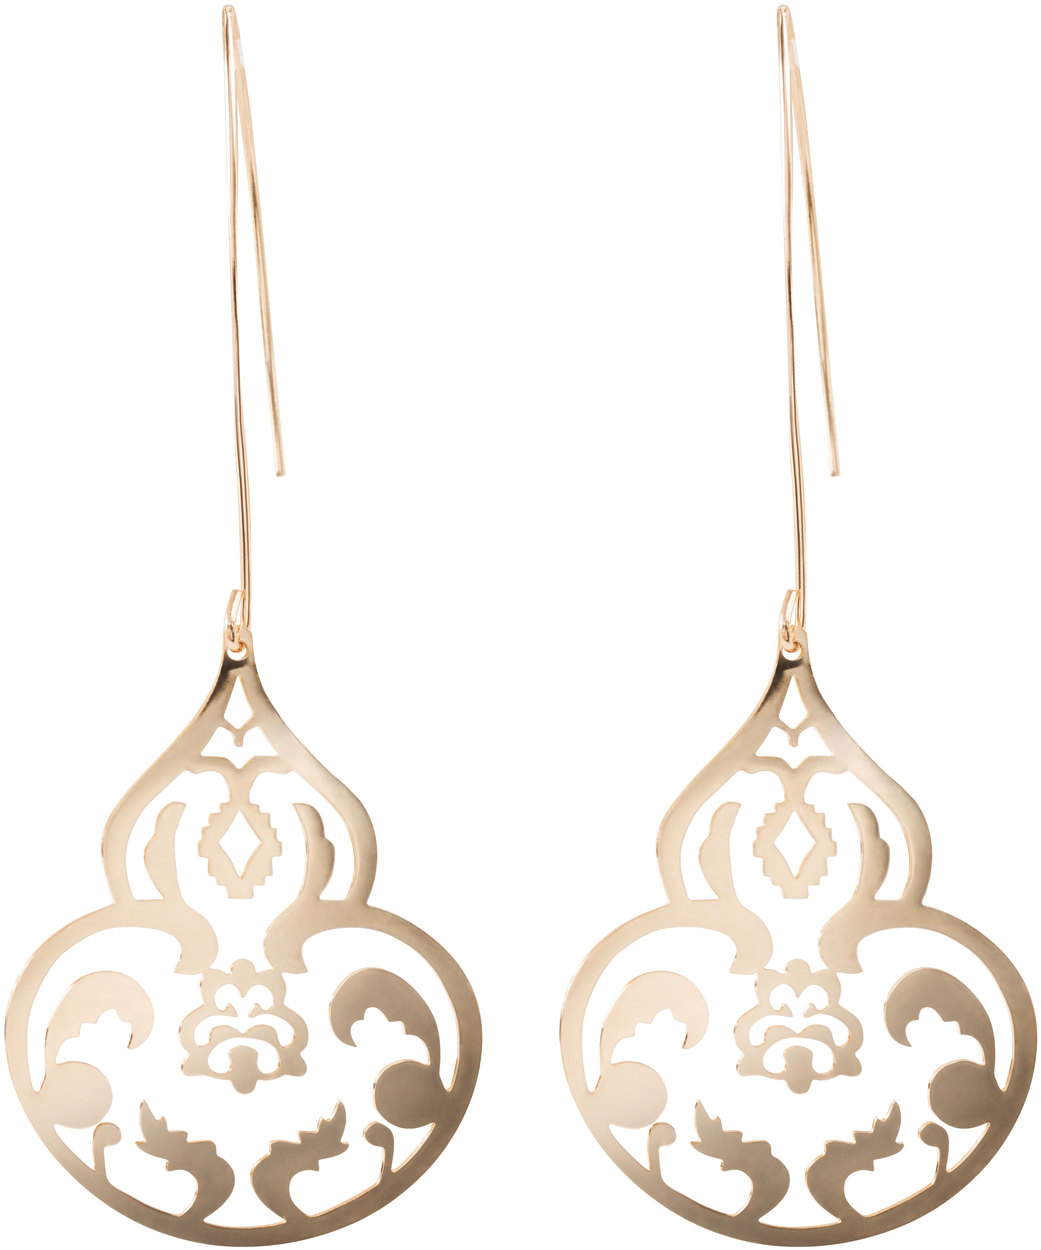 Gold Ornament by H2Z Filigree Jewelry - Gold Ornament - Filigree Dangle Earring